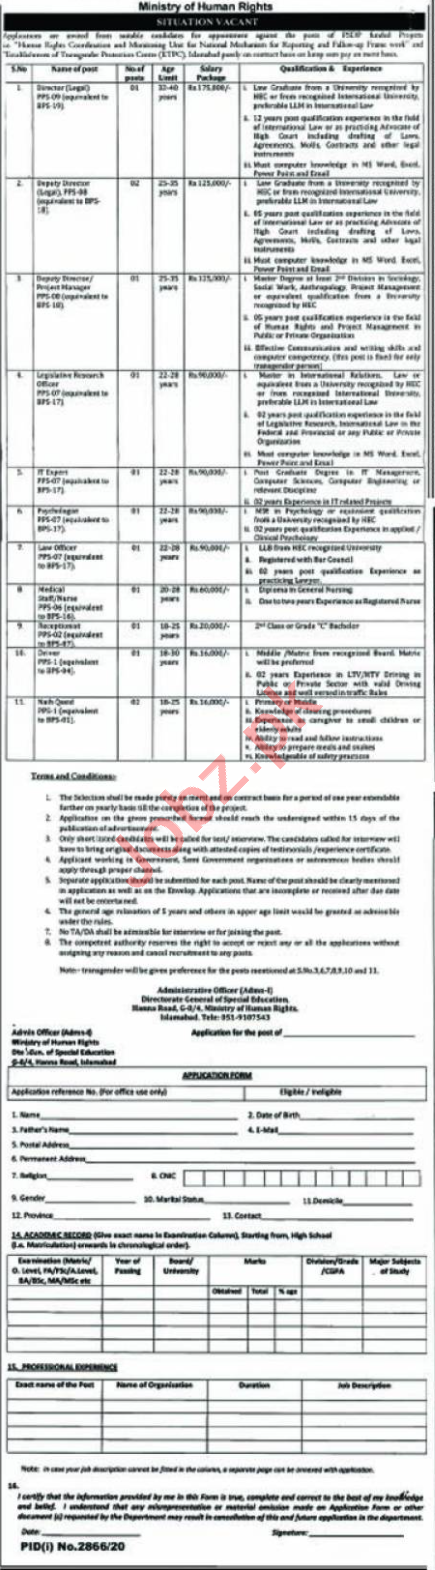 Management Staff Jobs 2020 in Ministry of Human Rights